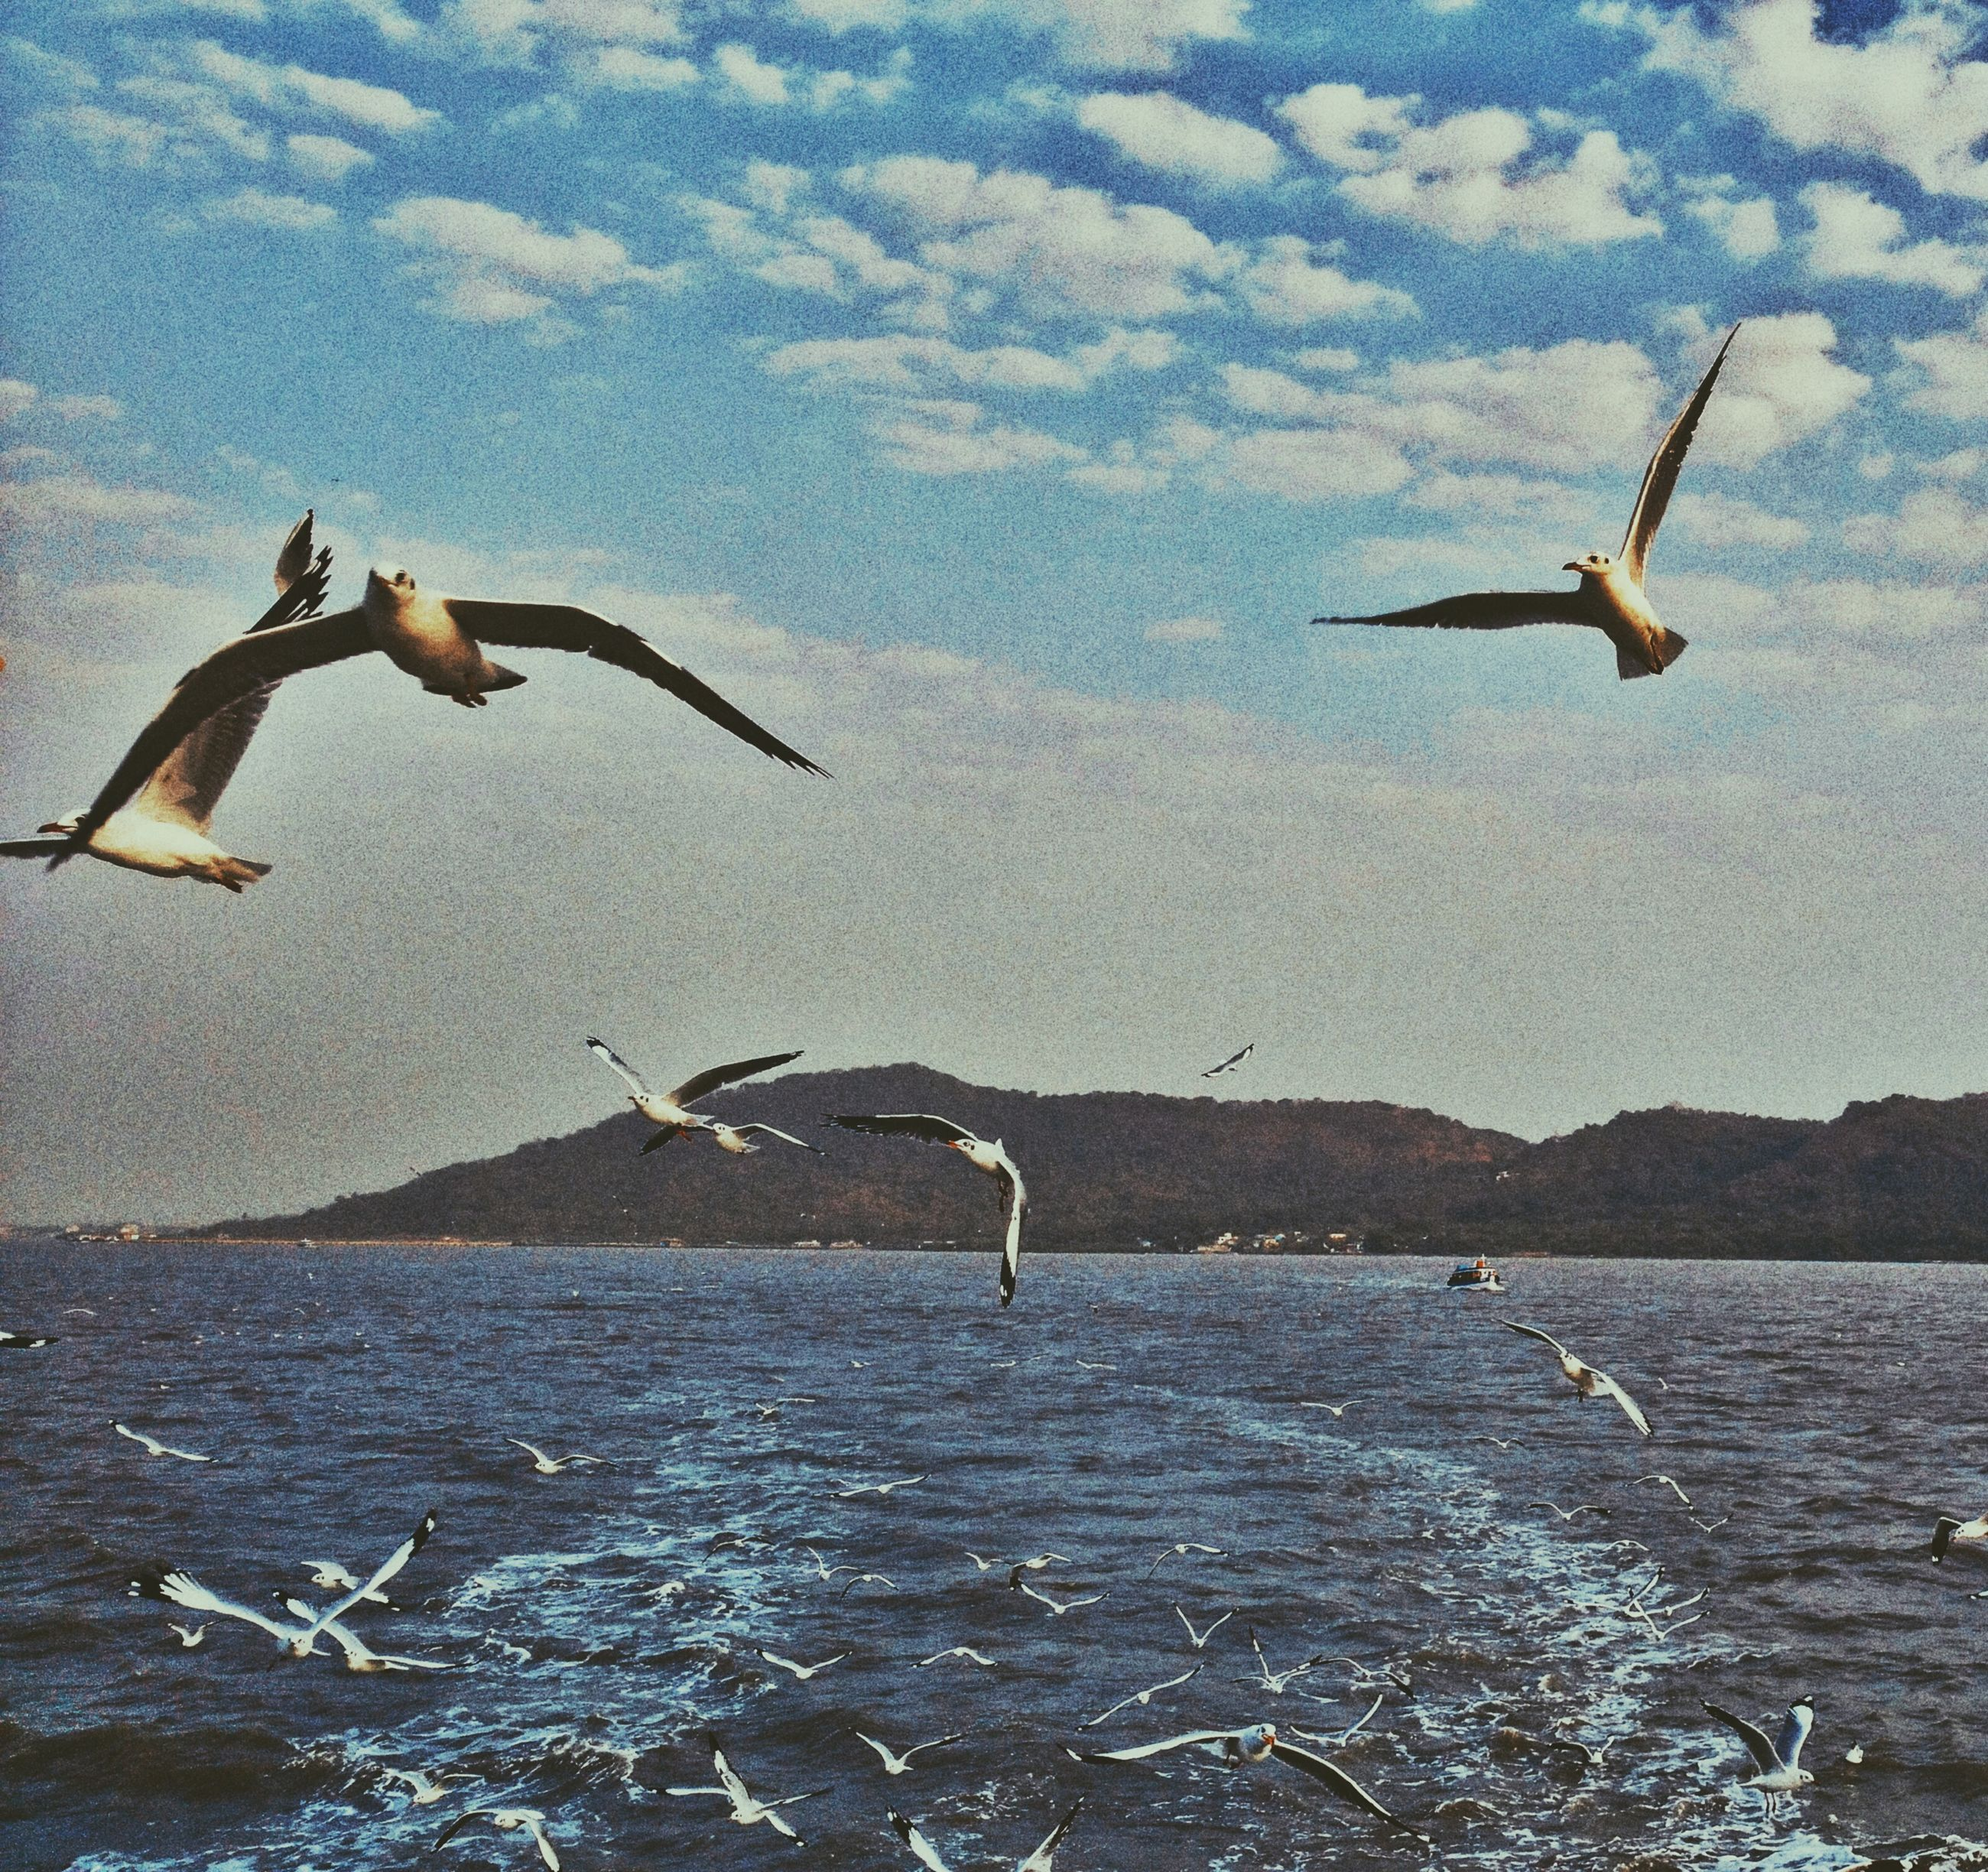 flying, mid-air, water, sky, sea, bird, spread wings, cloud - sky, transportation, seagull, nature, leisure activity, day, travel, jumping, motion, outdoors, beach